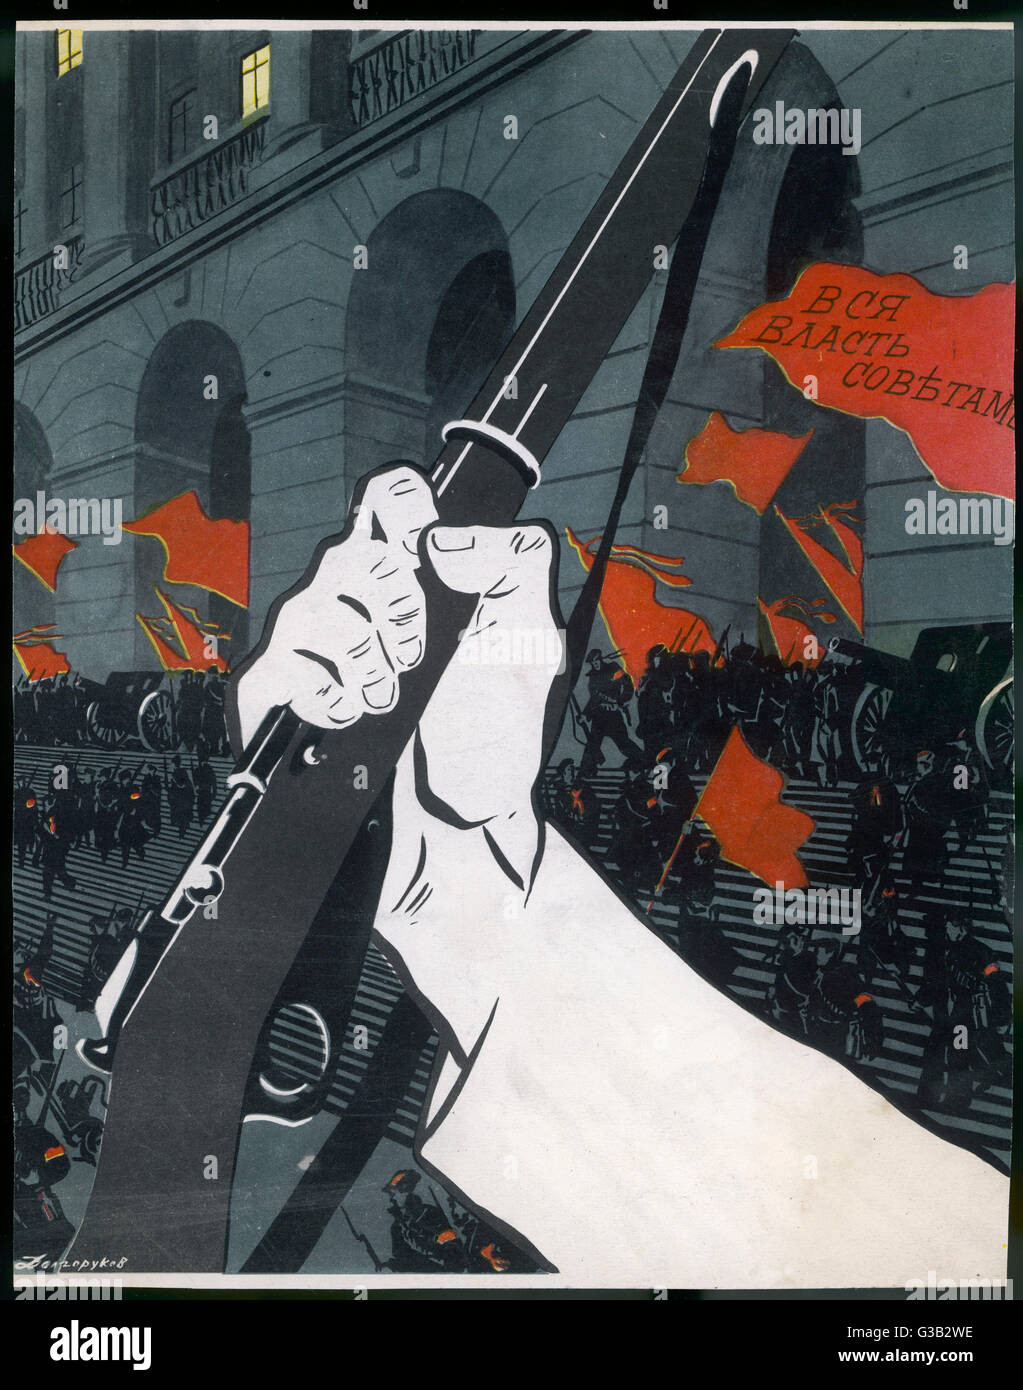 Revolutionary poster showing  a raised arm holding a rifle  against a backdrop of armed  revolutionaries on the - Stock Image